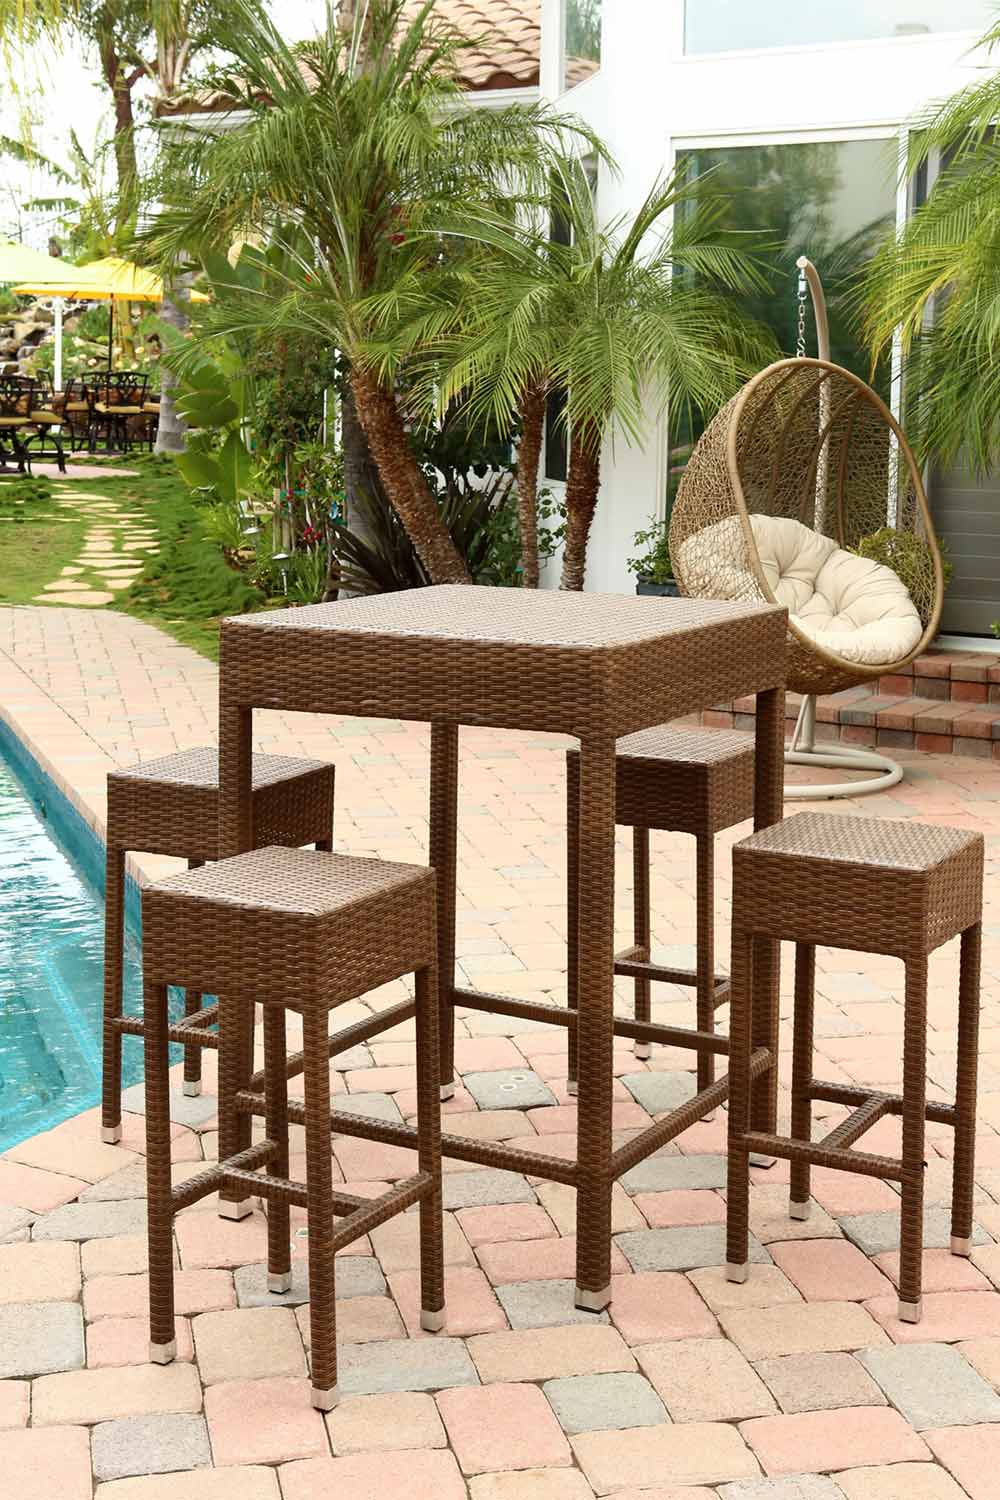 Abbyson Living Palermo Outdoor Wicker 5 Piece Dining Bar Set - Brown